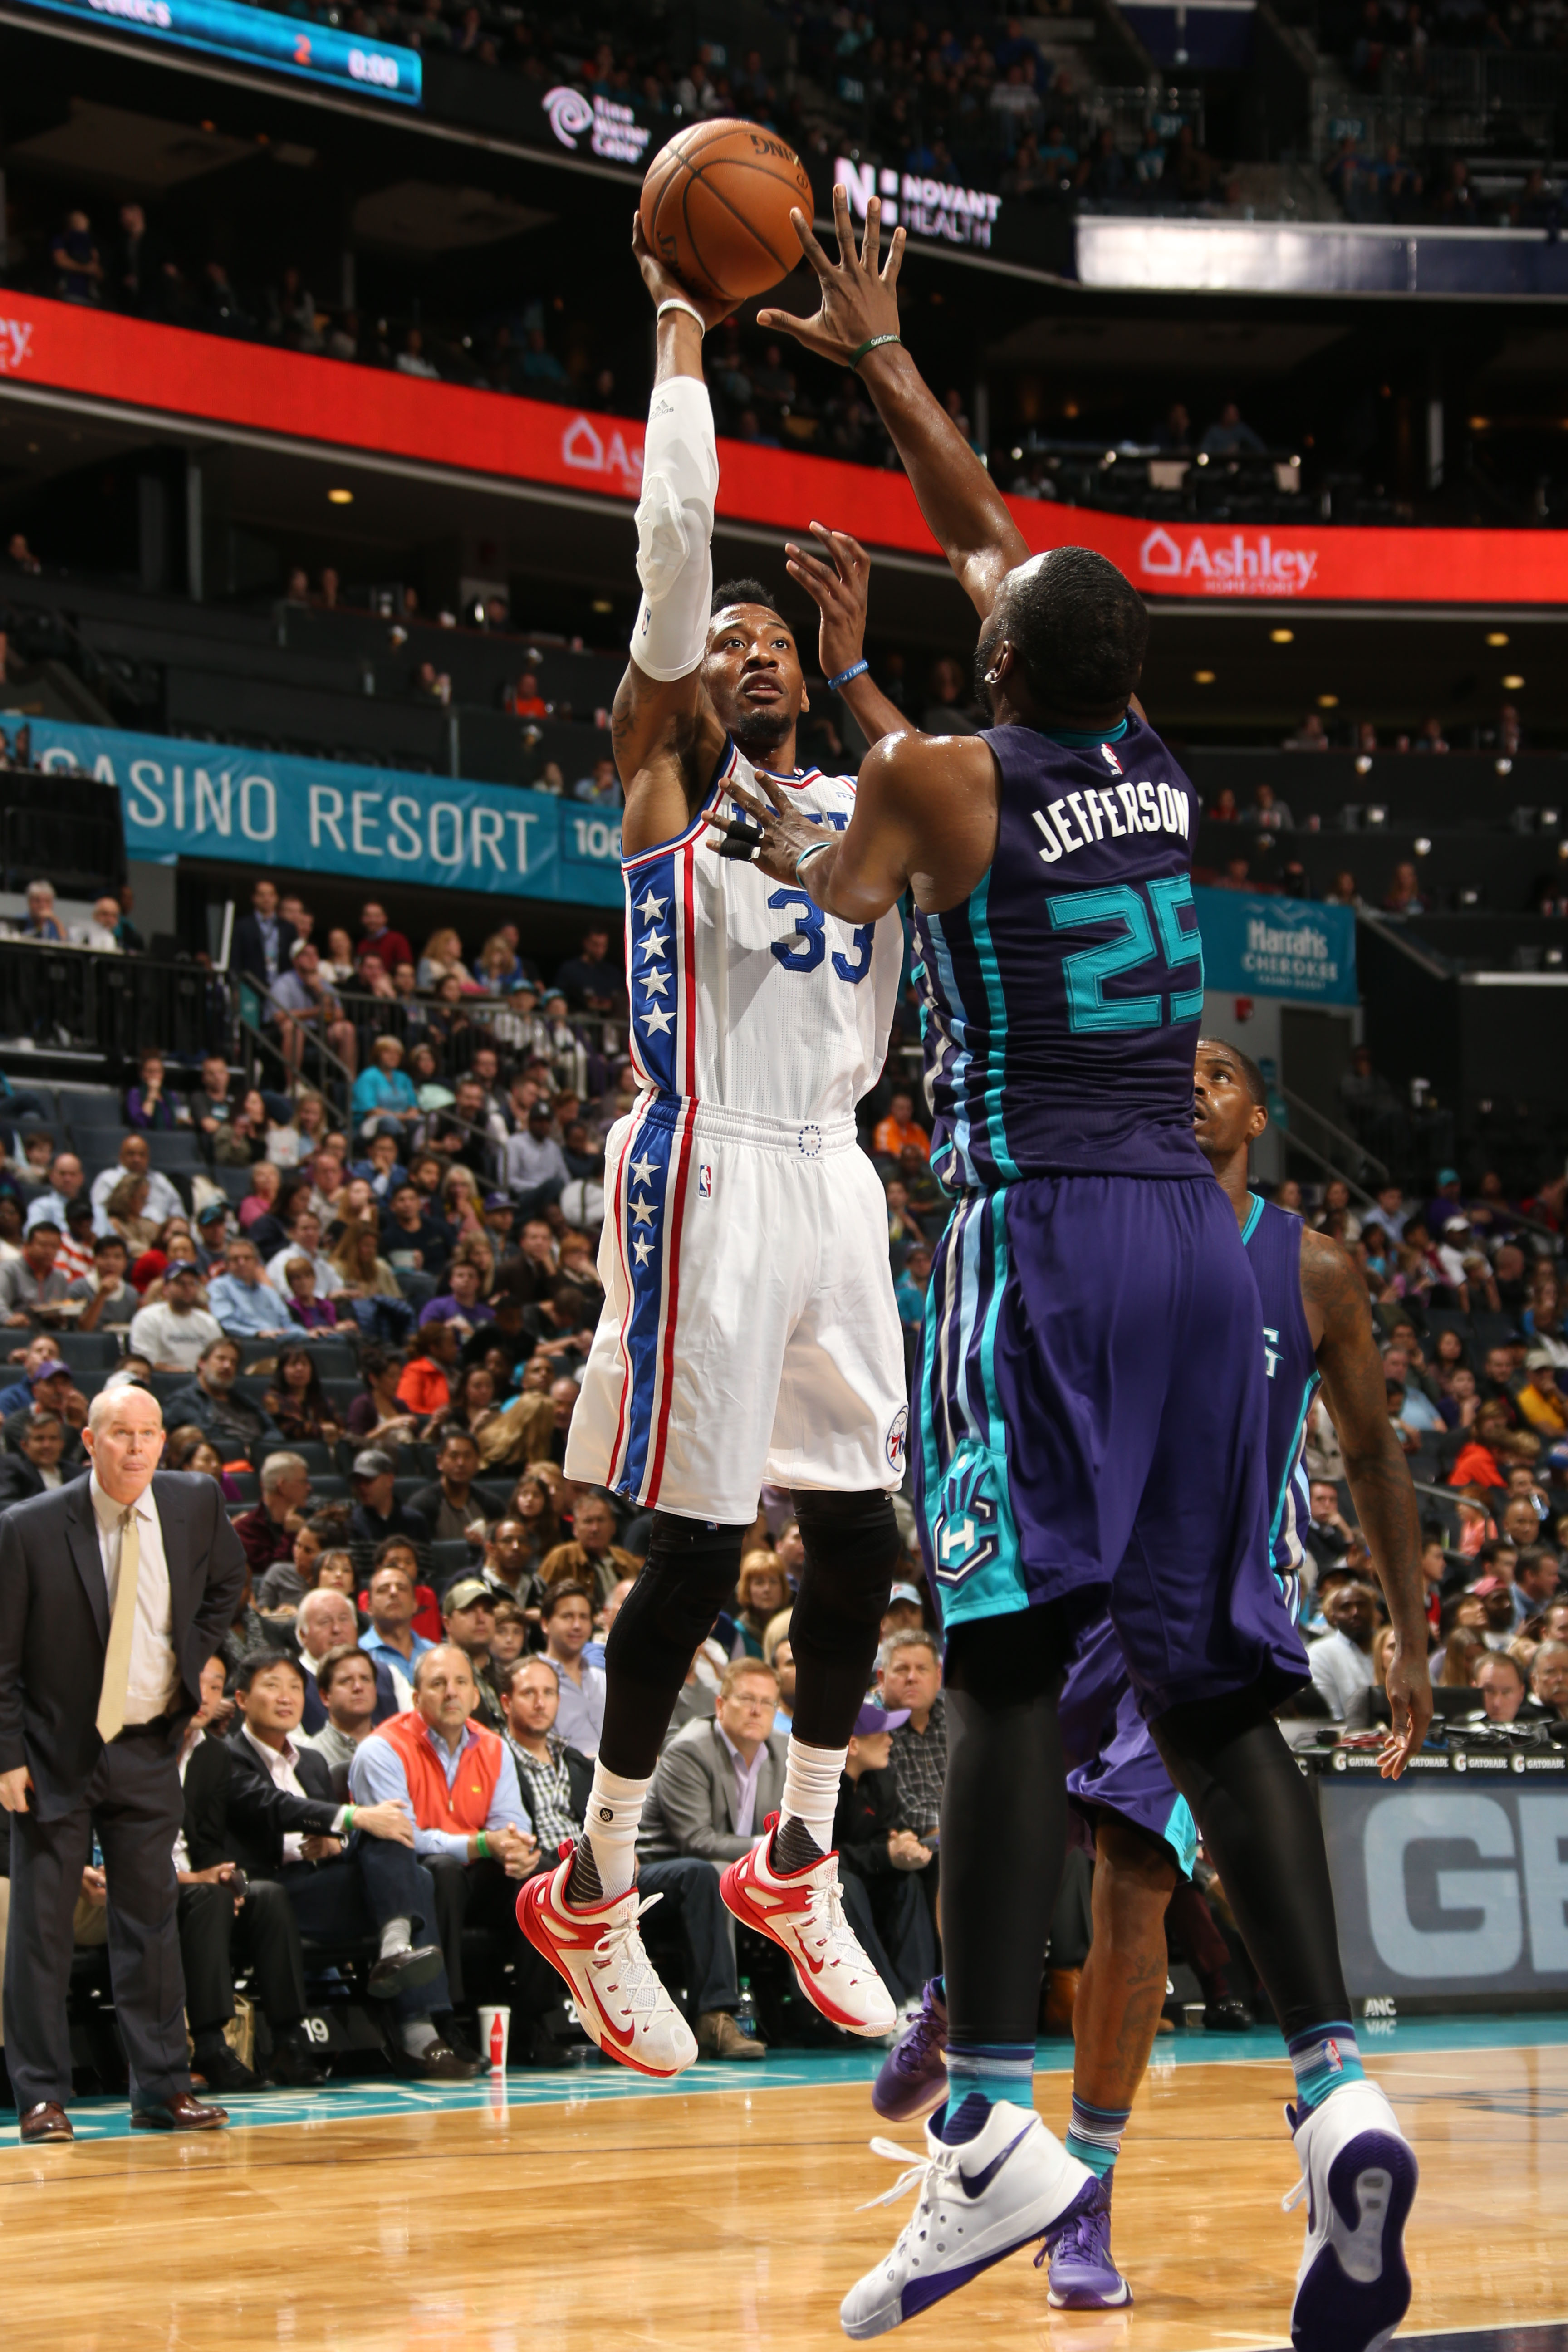 CHARLOTTE, NC - NOVEMBER 20:  Robert Covington #33 of the Philadelphia 76ers shoots against Al Jefferson #25 of the Charlotte Hornets during the game at the Time Warner Cable Arena on November 20, 2015 in Charlotte, North Carolina. (Photo by Kent Smith/NB